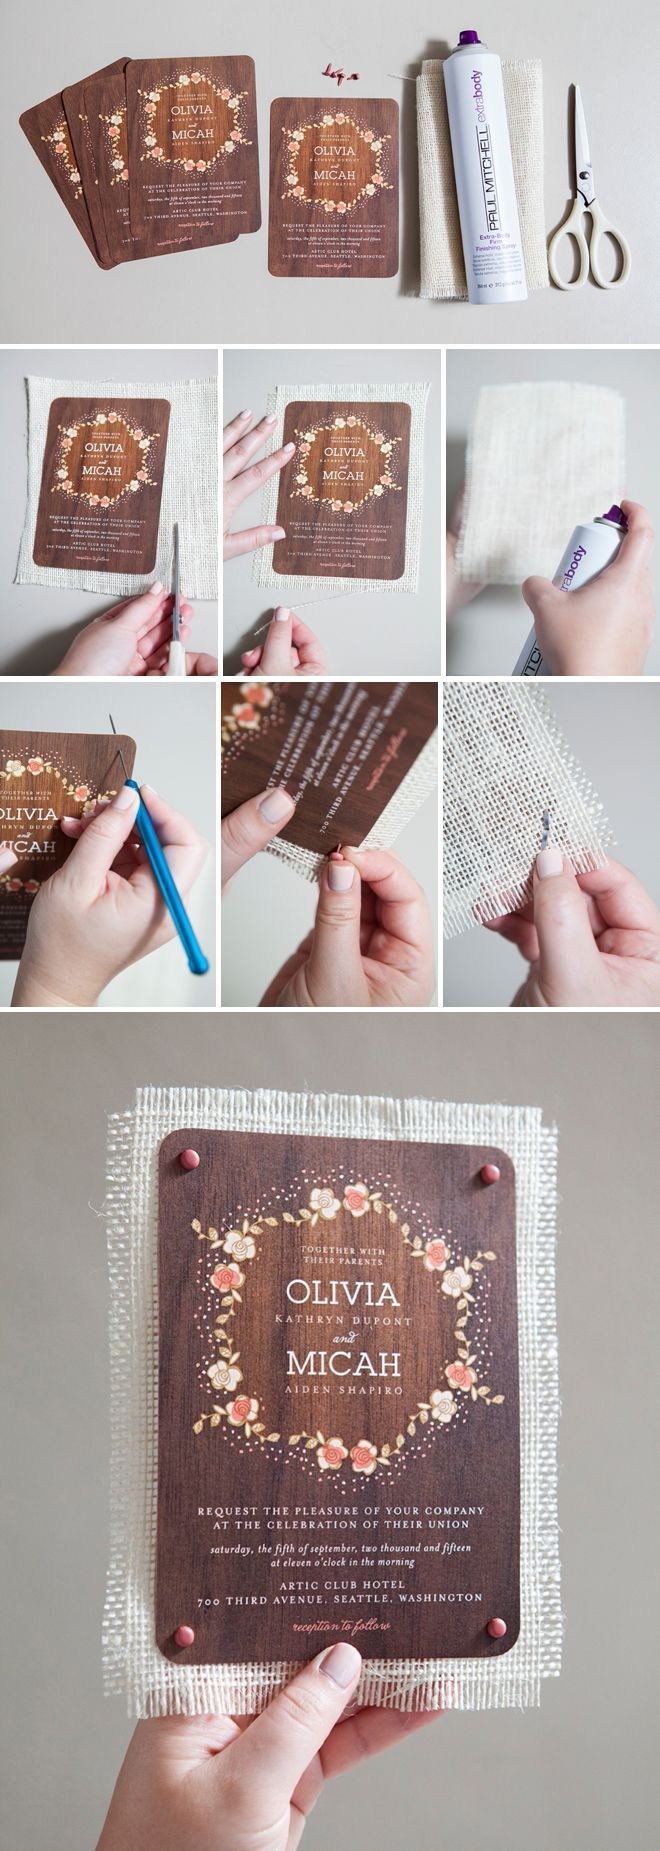 Dale un espectacular giro a tus invitaciones de boda. #DIY #Invitations #Wedding